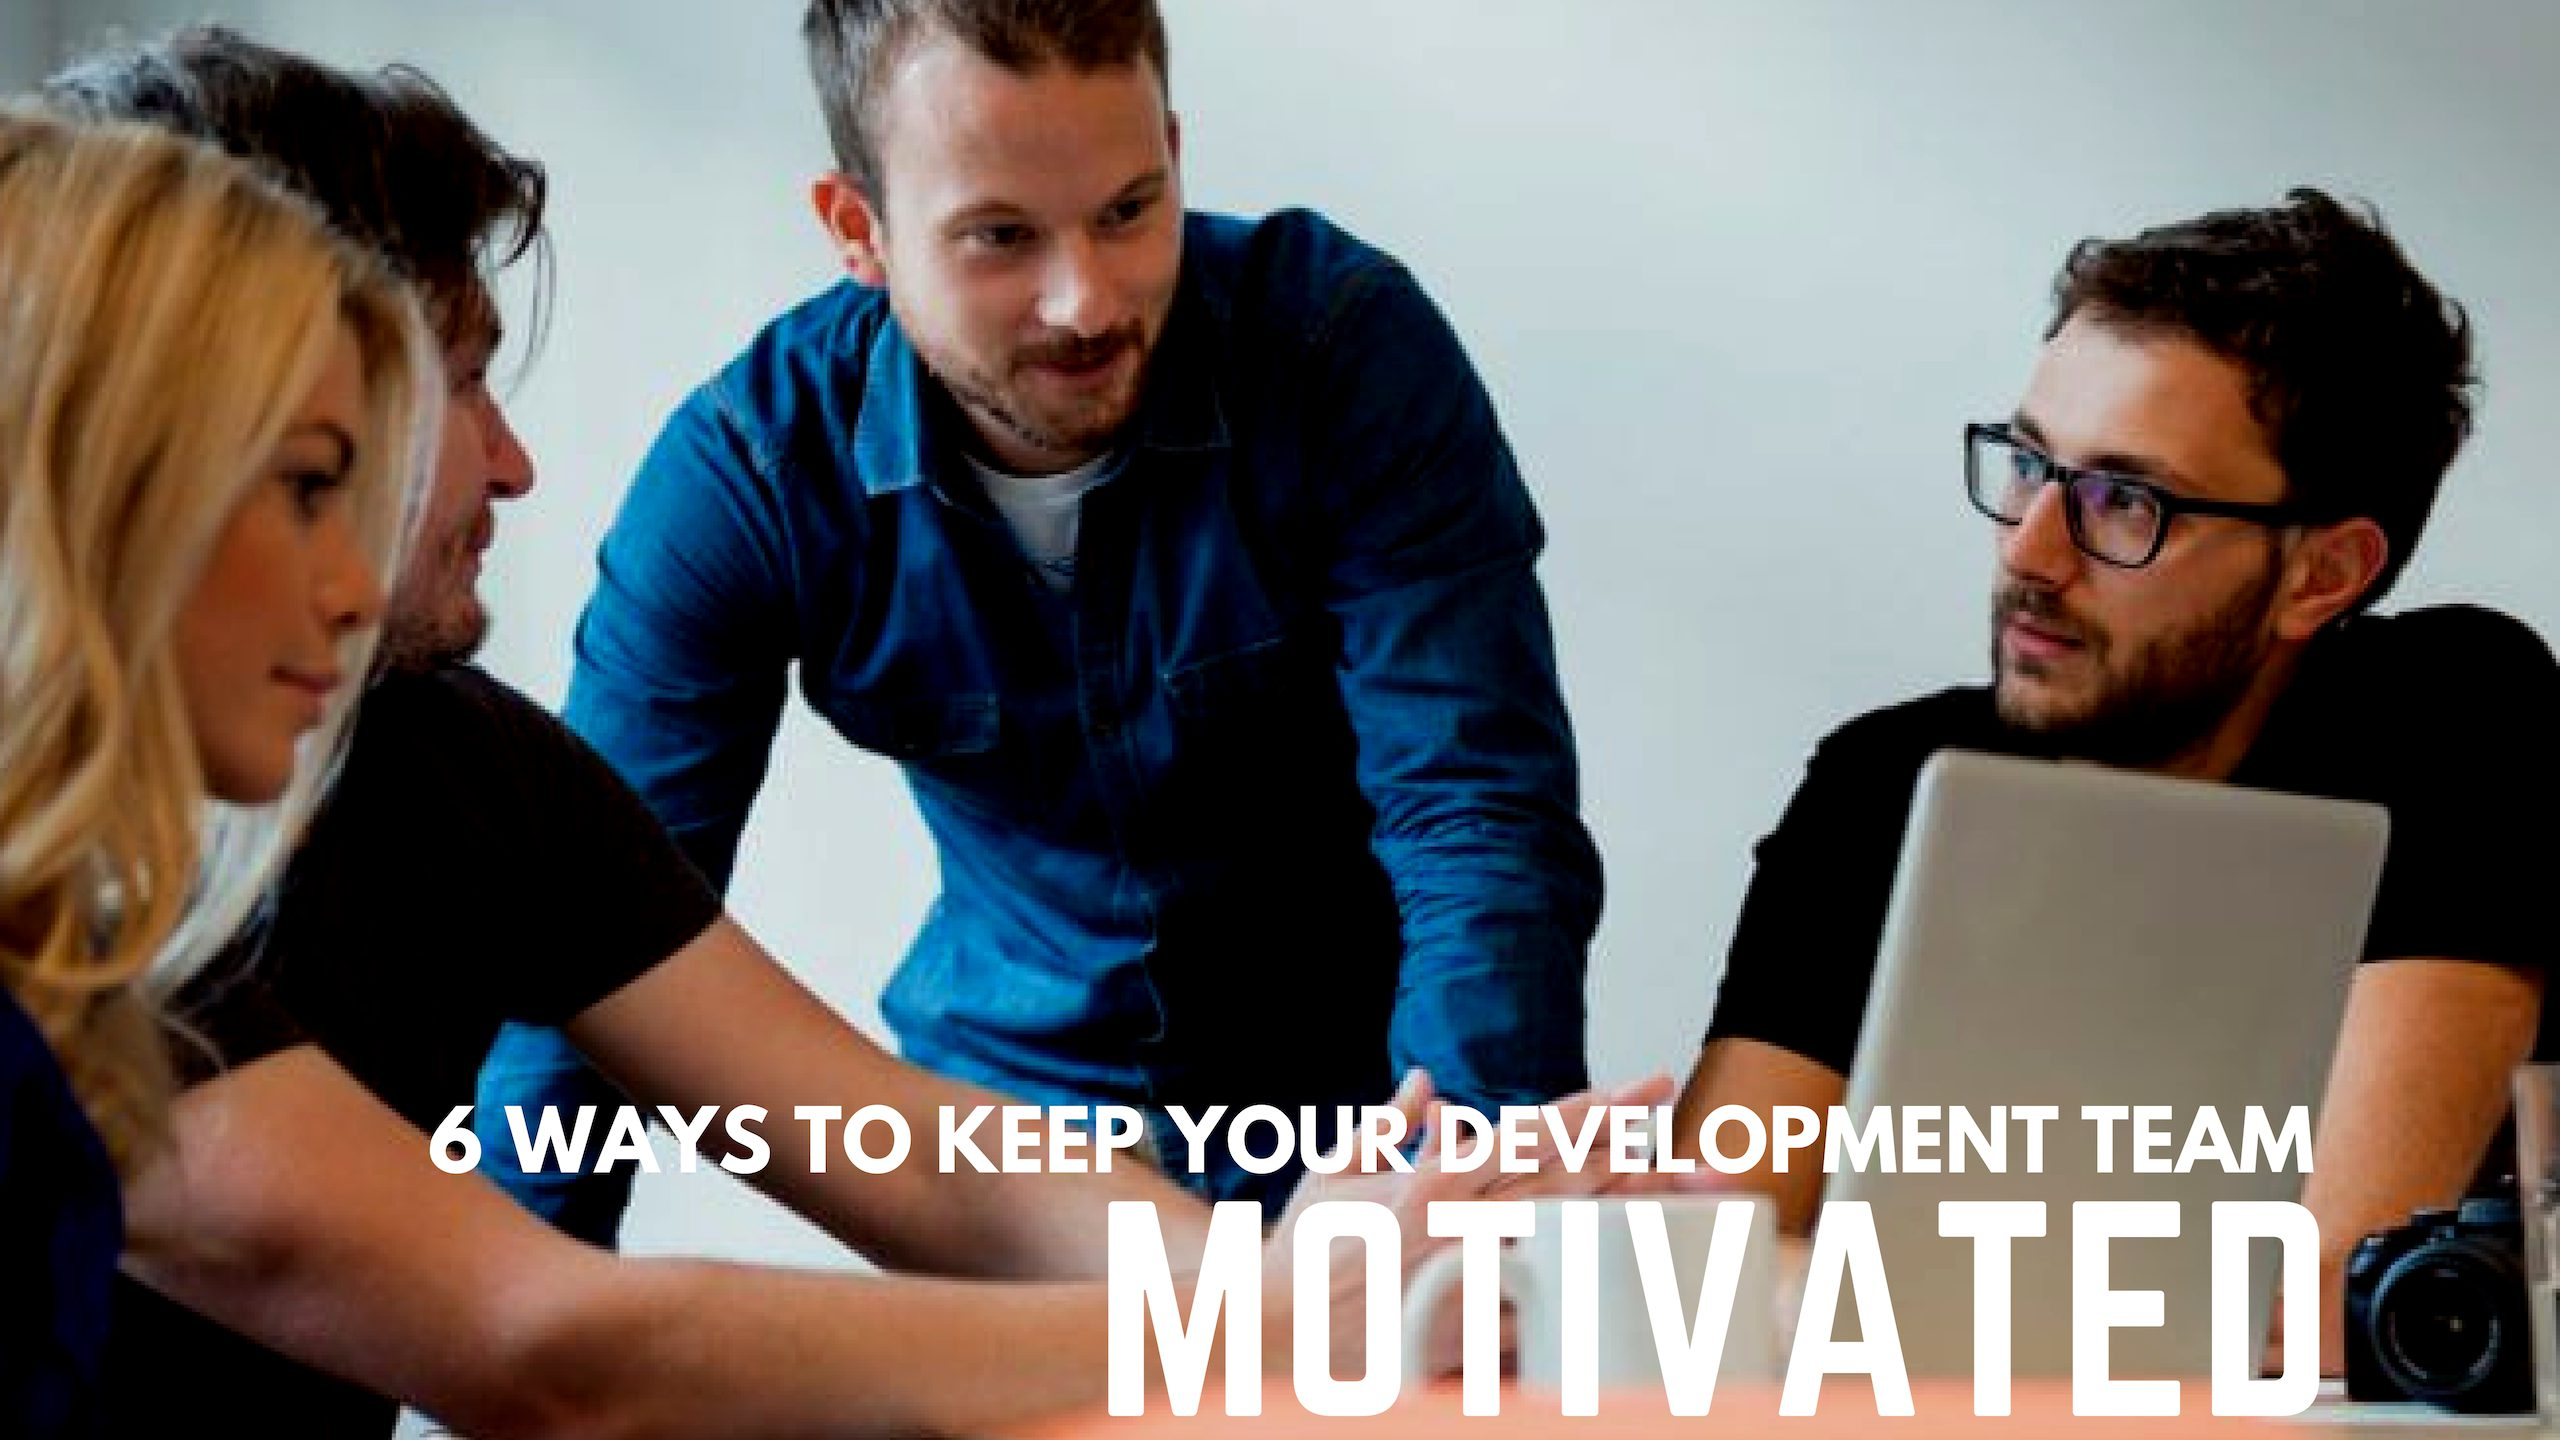 6 Ways To Keep Your Development Team Motivated